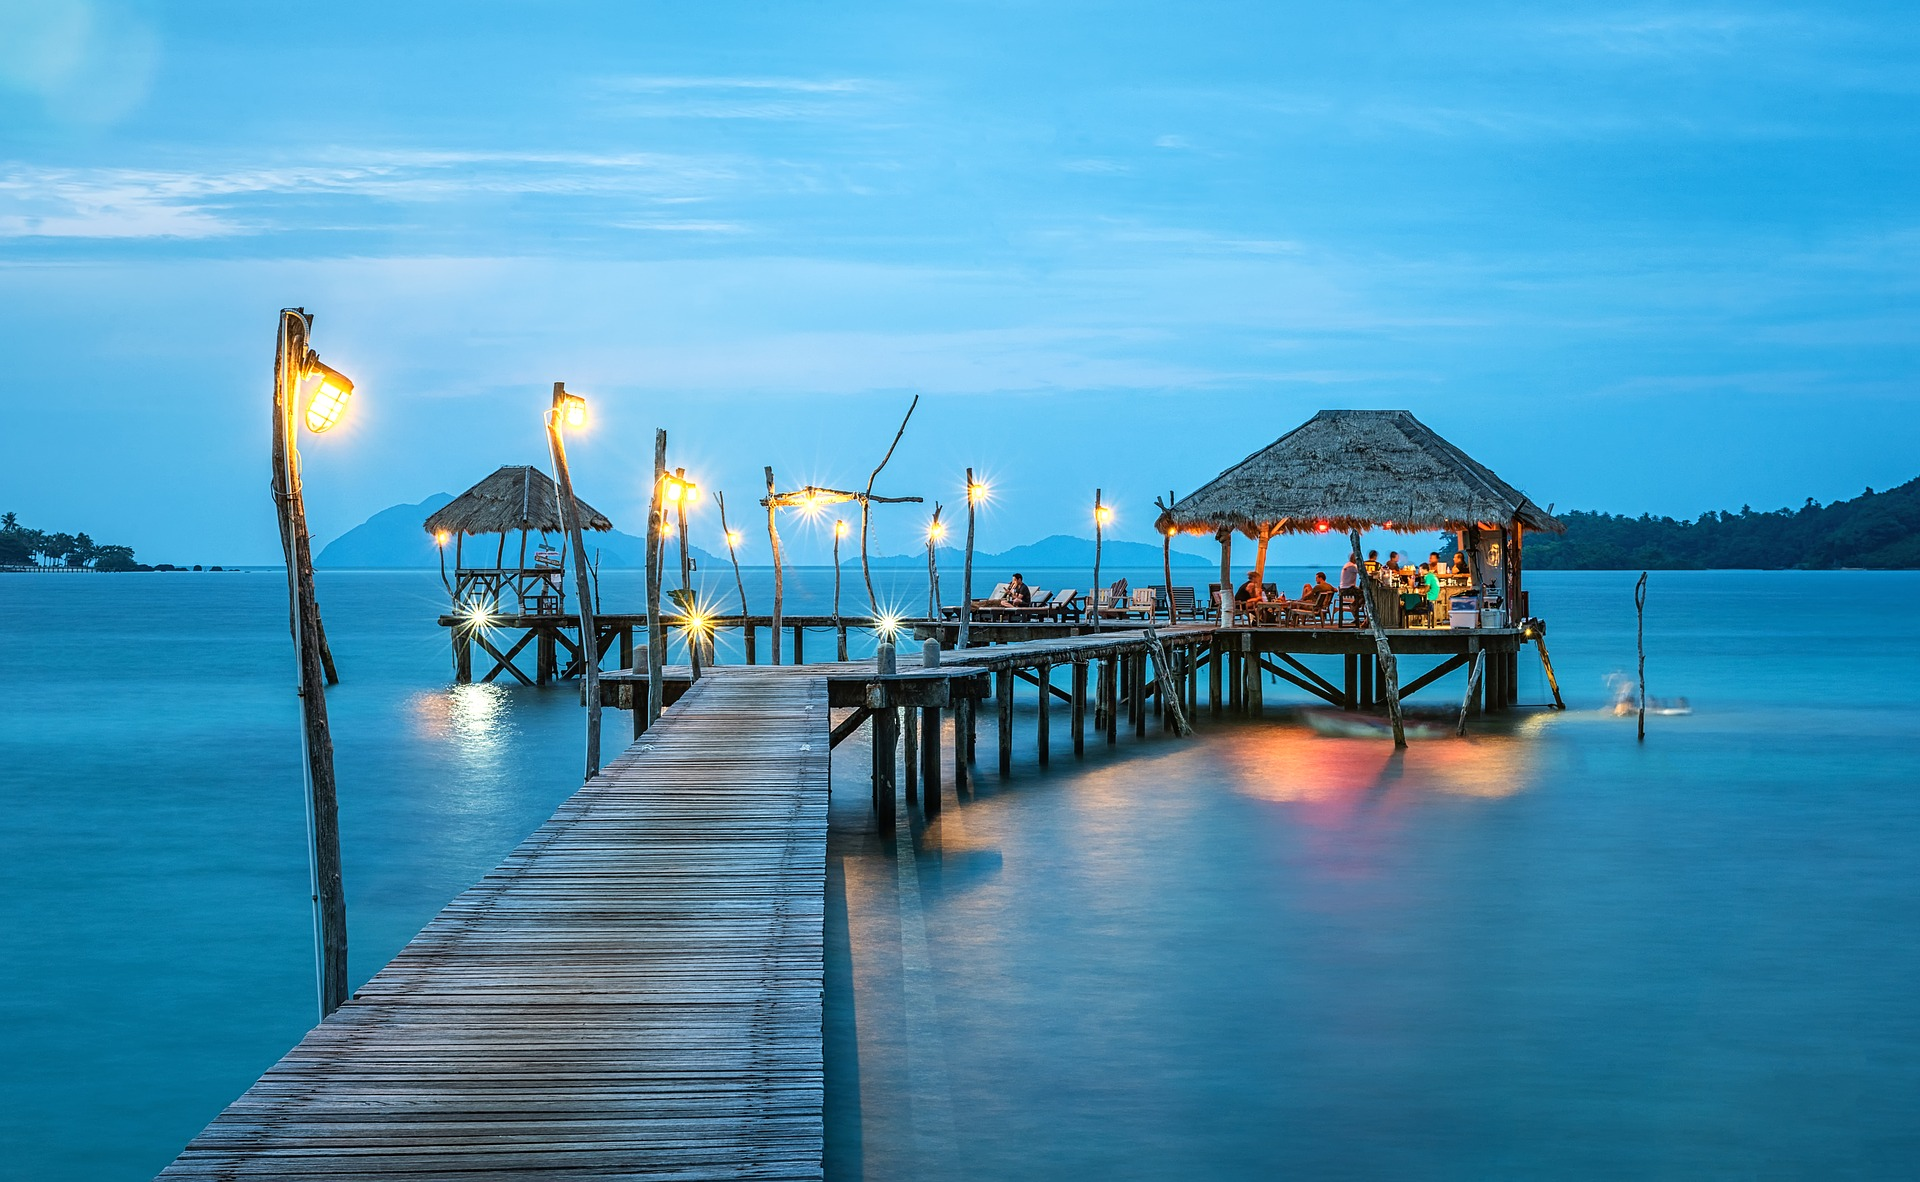 Night falls on a dock in the Yucatan (click to enlarge). Make sure to optimize your images for faster page loading times.